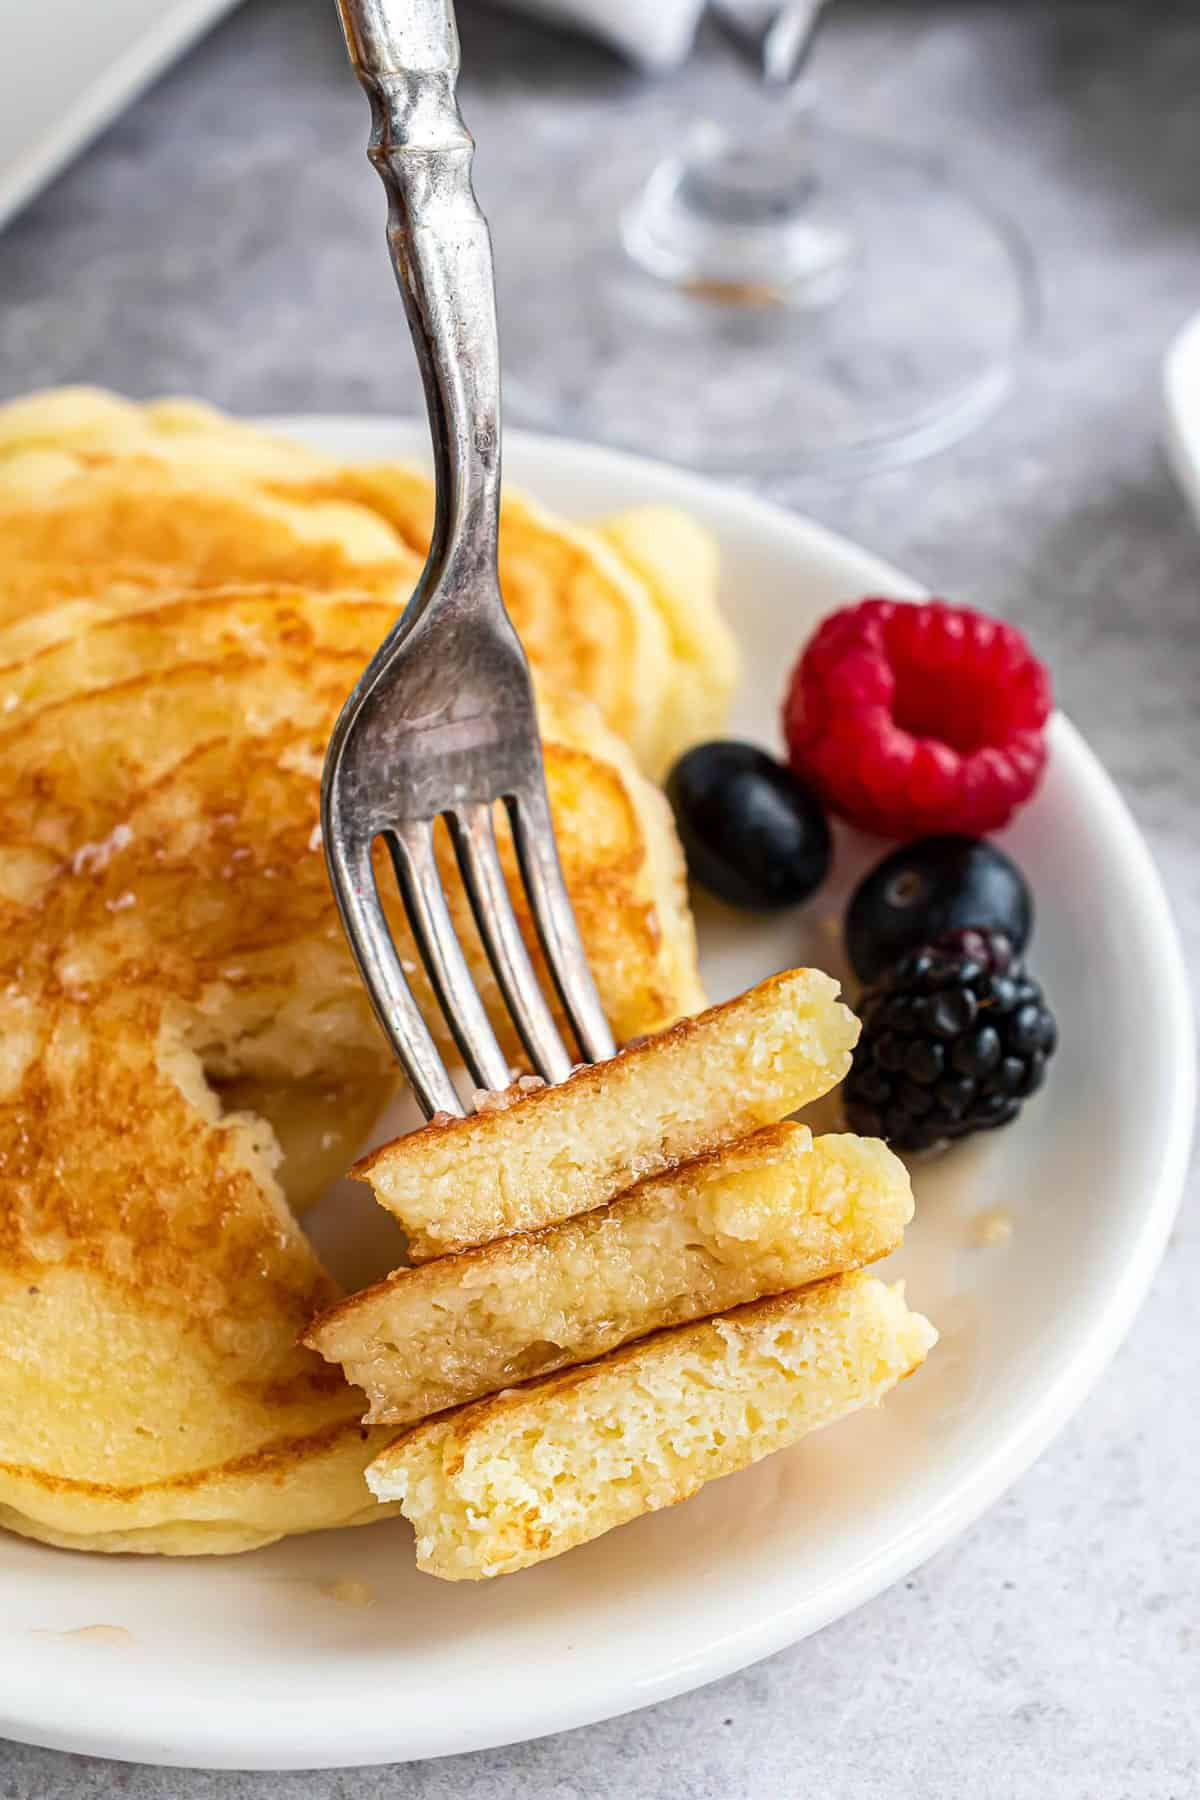 Three pieces of pancake on a fork, more in the background.